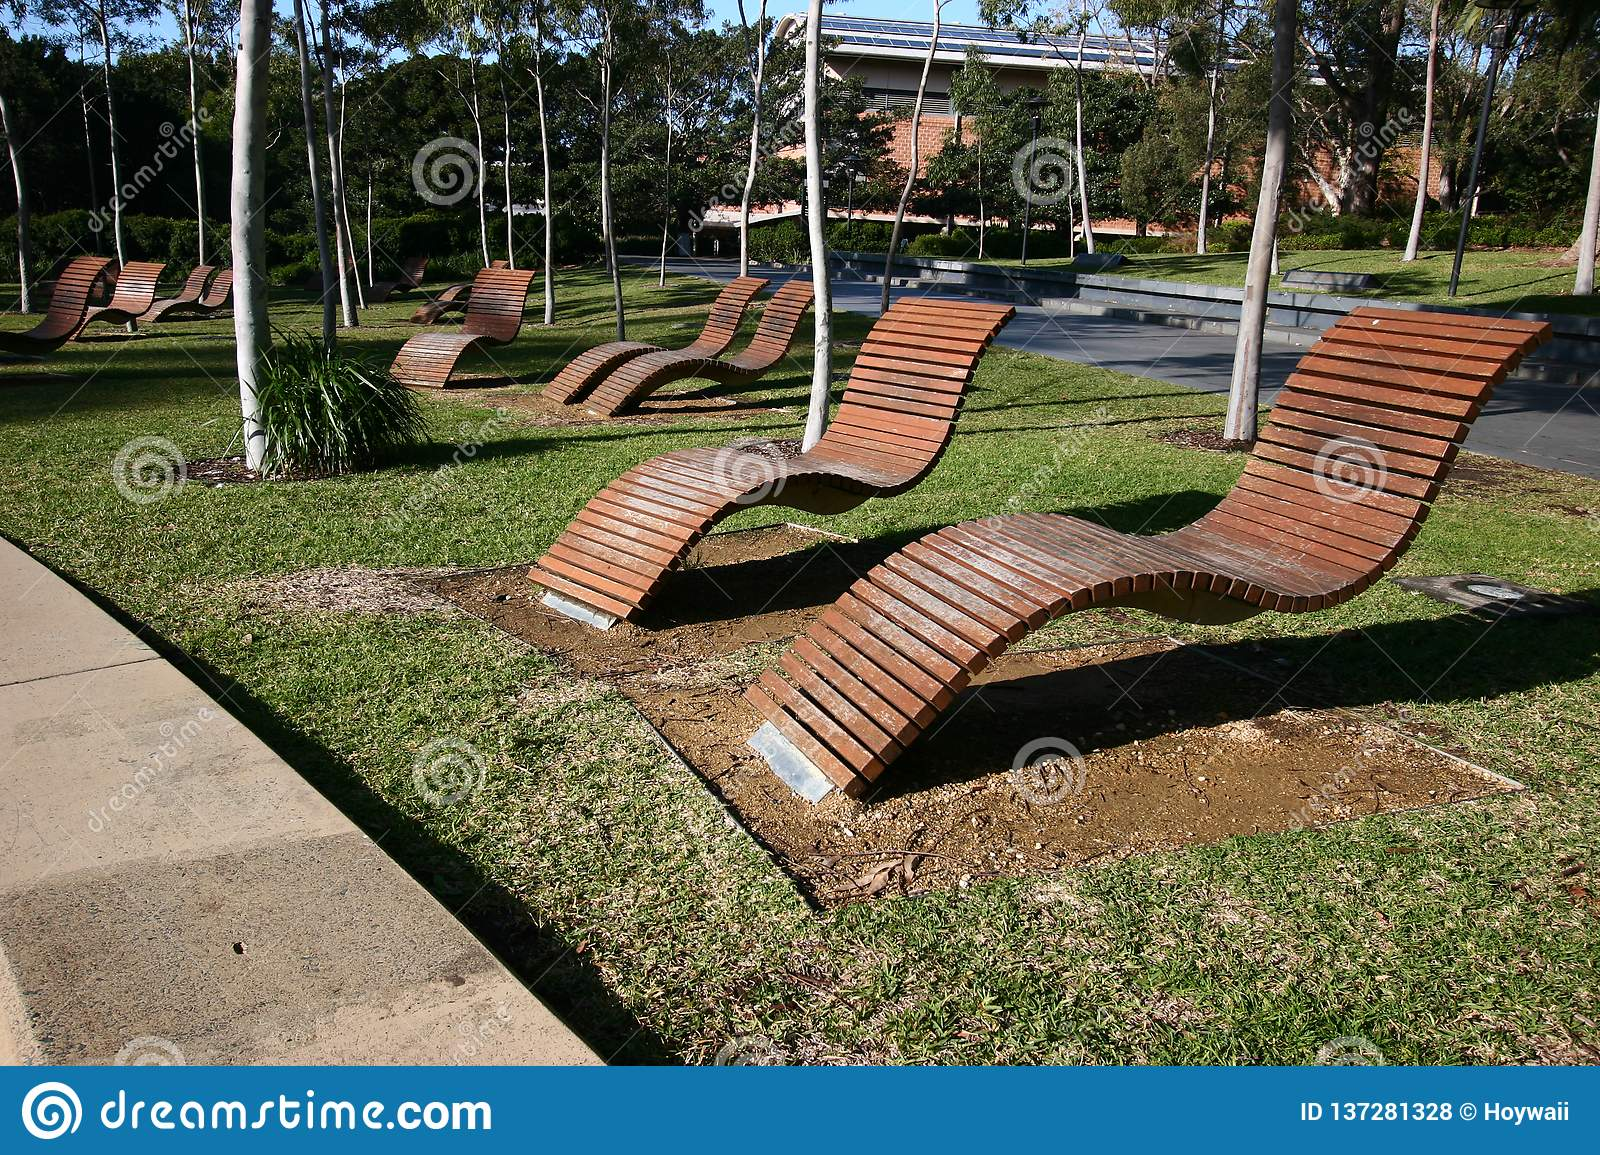 Awe Inspiring Empty Outdoor Wood Slat Chaise Lounge Chairs Hovering Above Ibusinesslaw Wood Chair Design Ideas Ibusinesslaworg